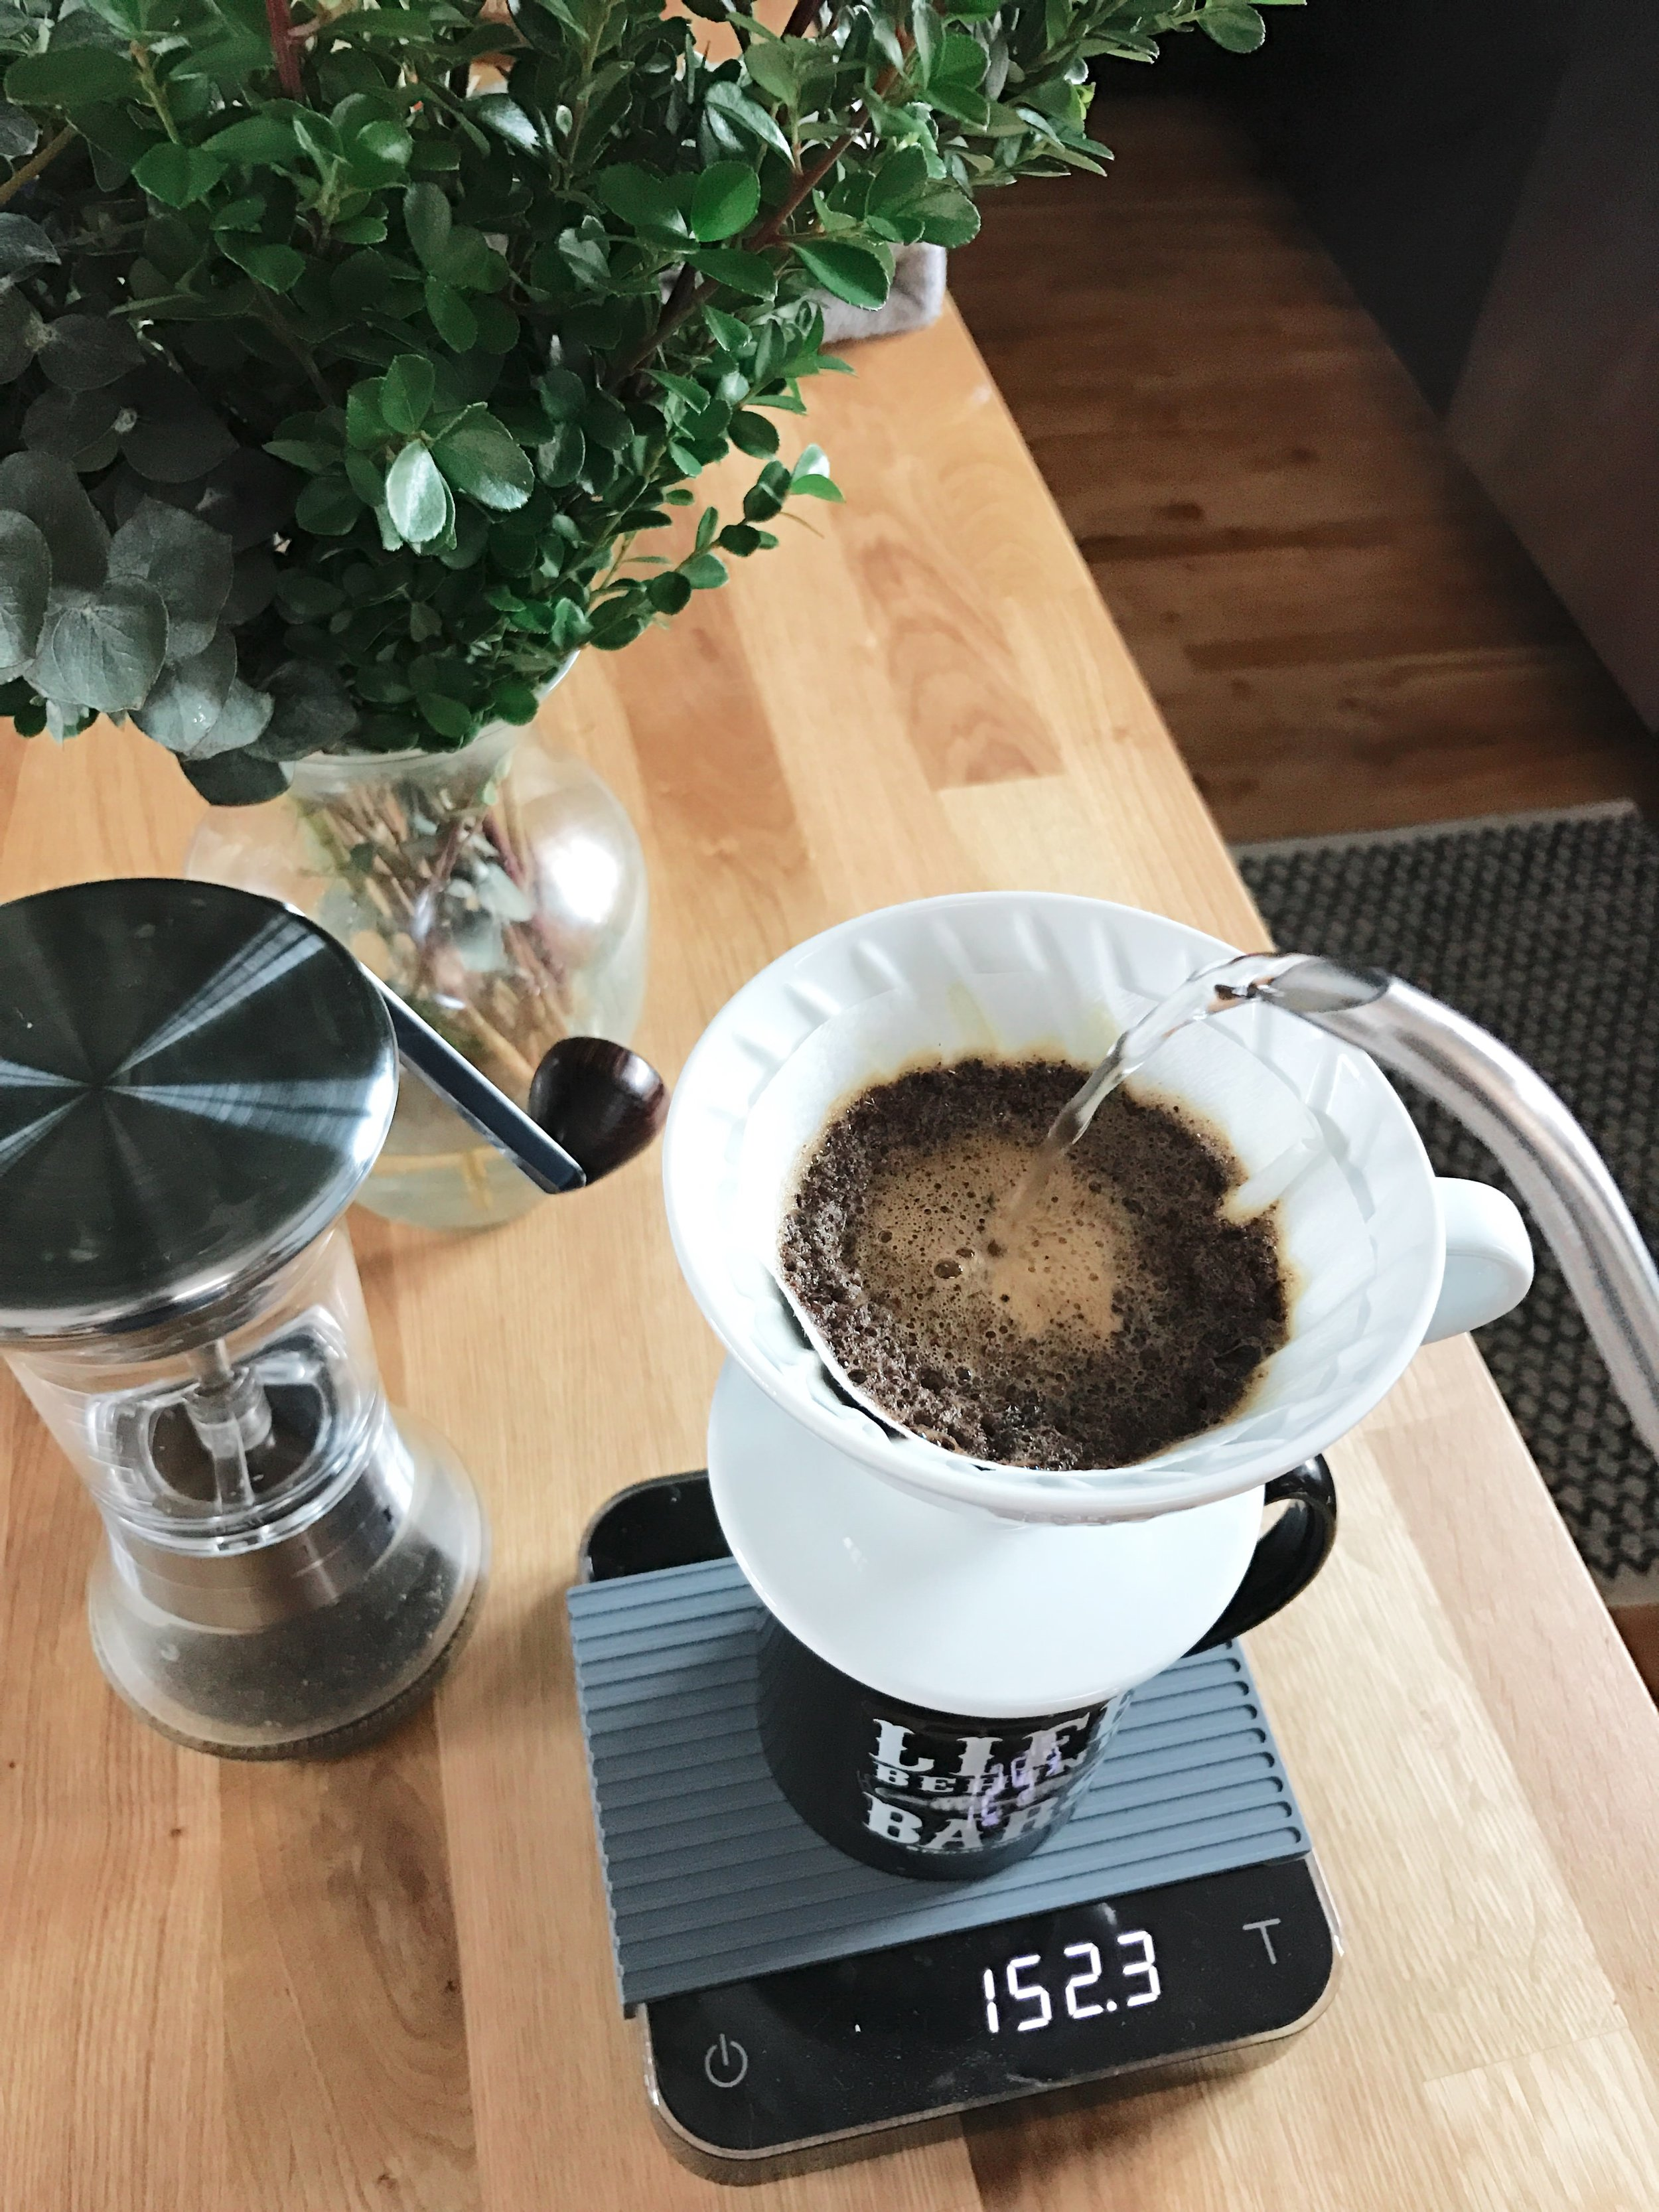 Pour over coffee using acaia pearl scale and handground grinder